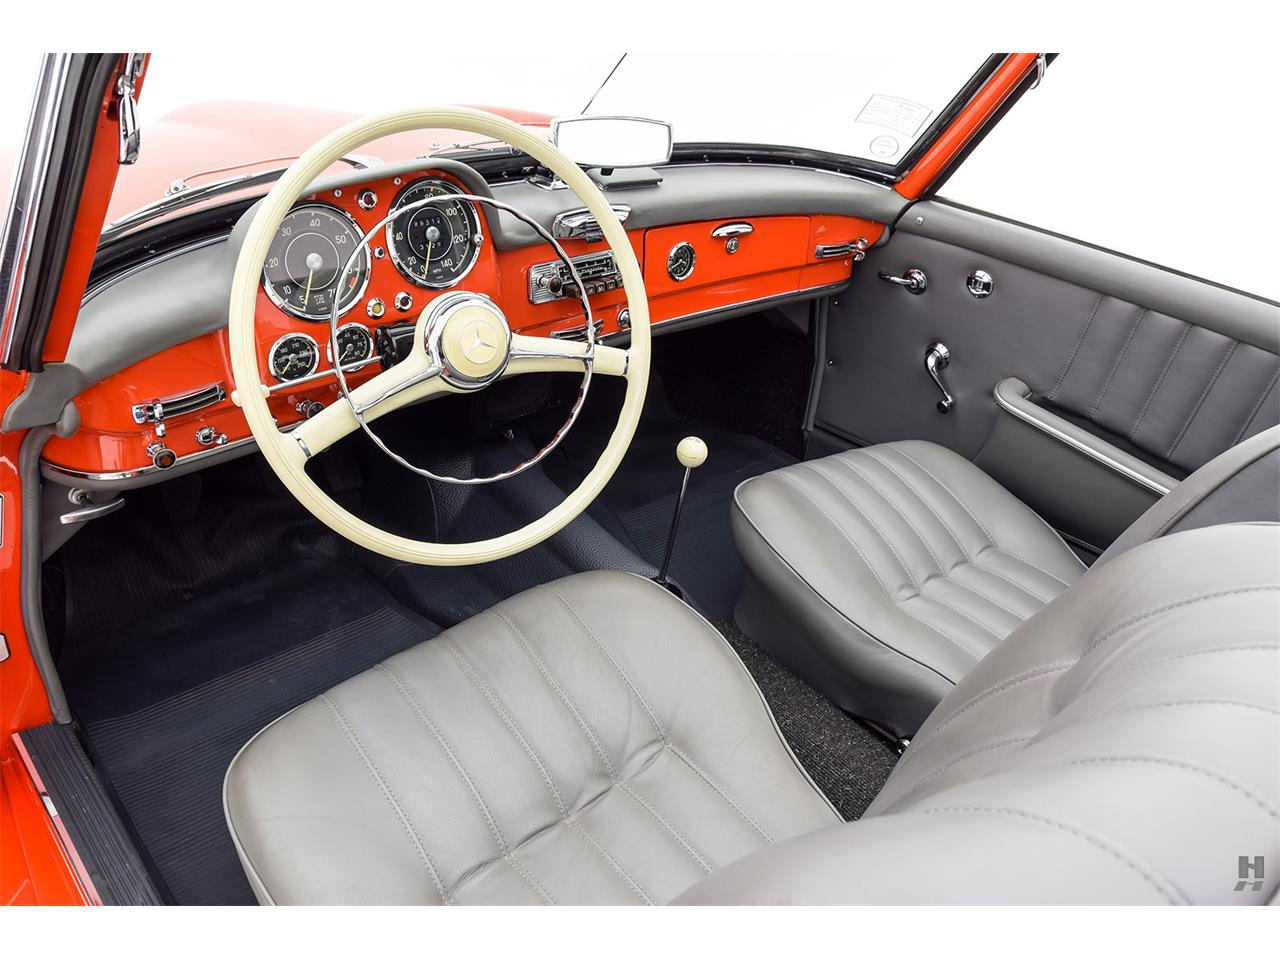 Large Picture of Classic '57 Mercedes-Benz 190SL Offered by Hyman Ltd. Classic Cars - P2K7